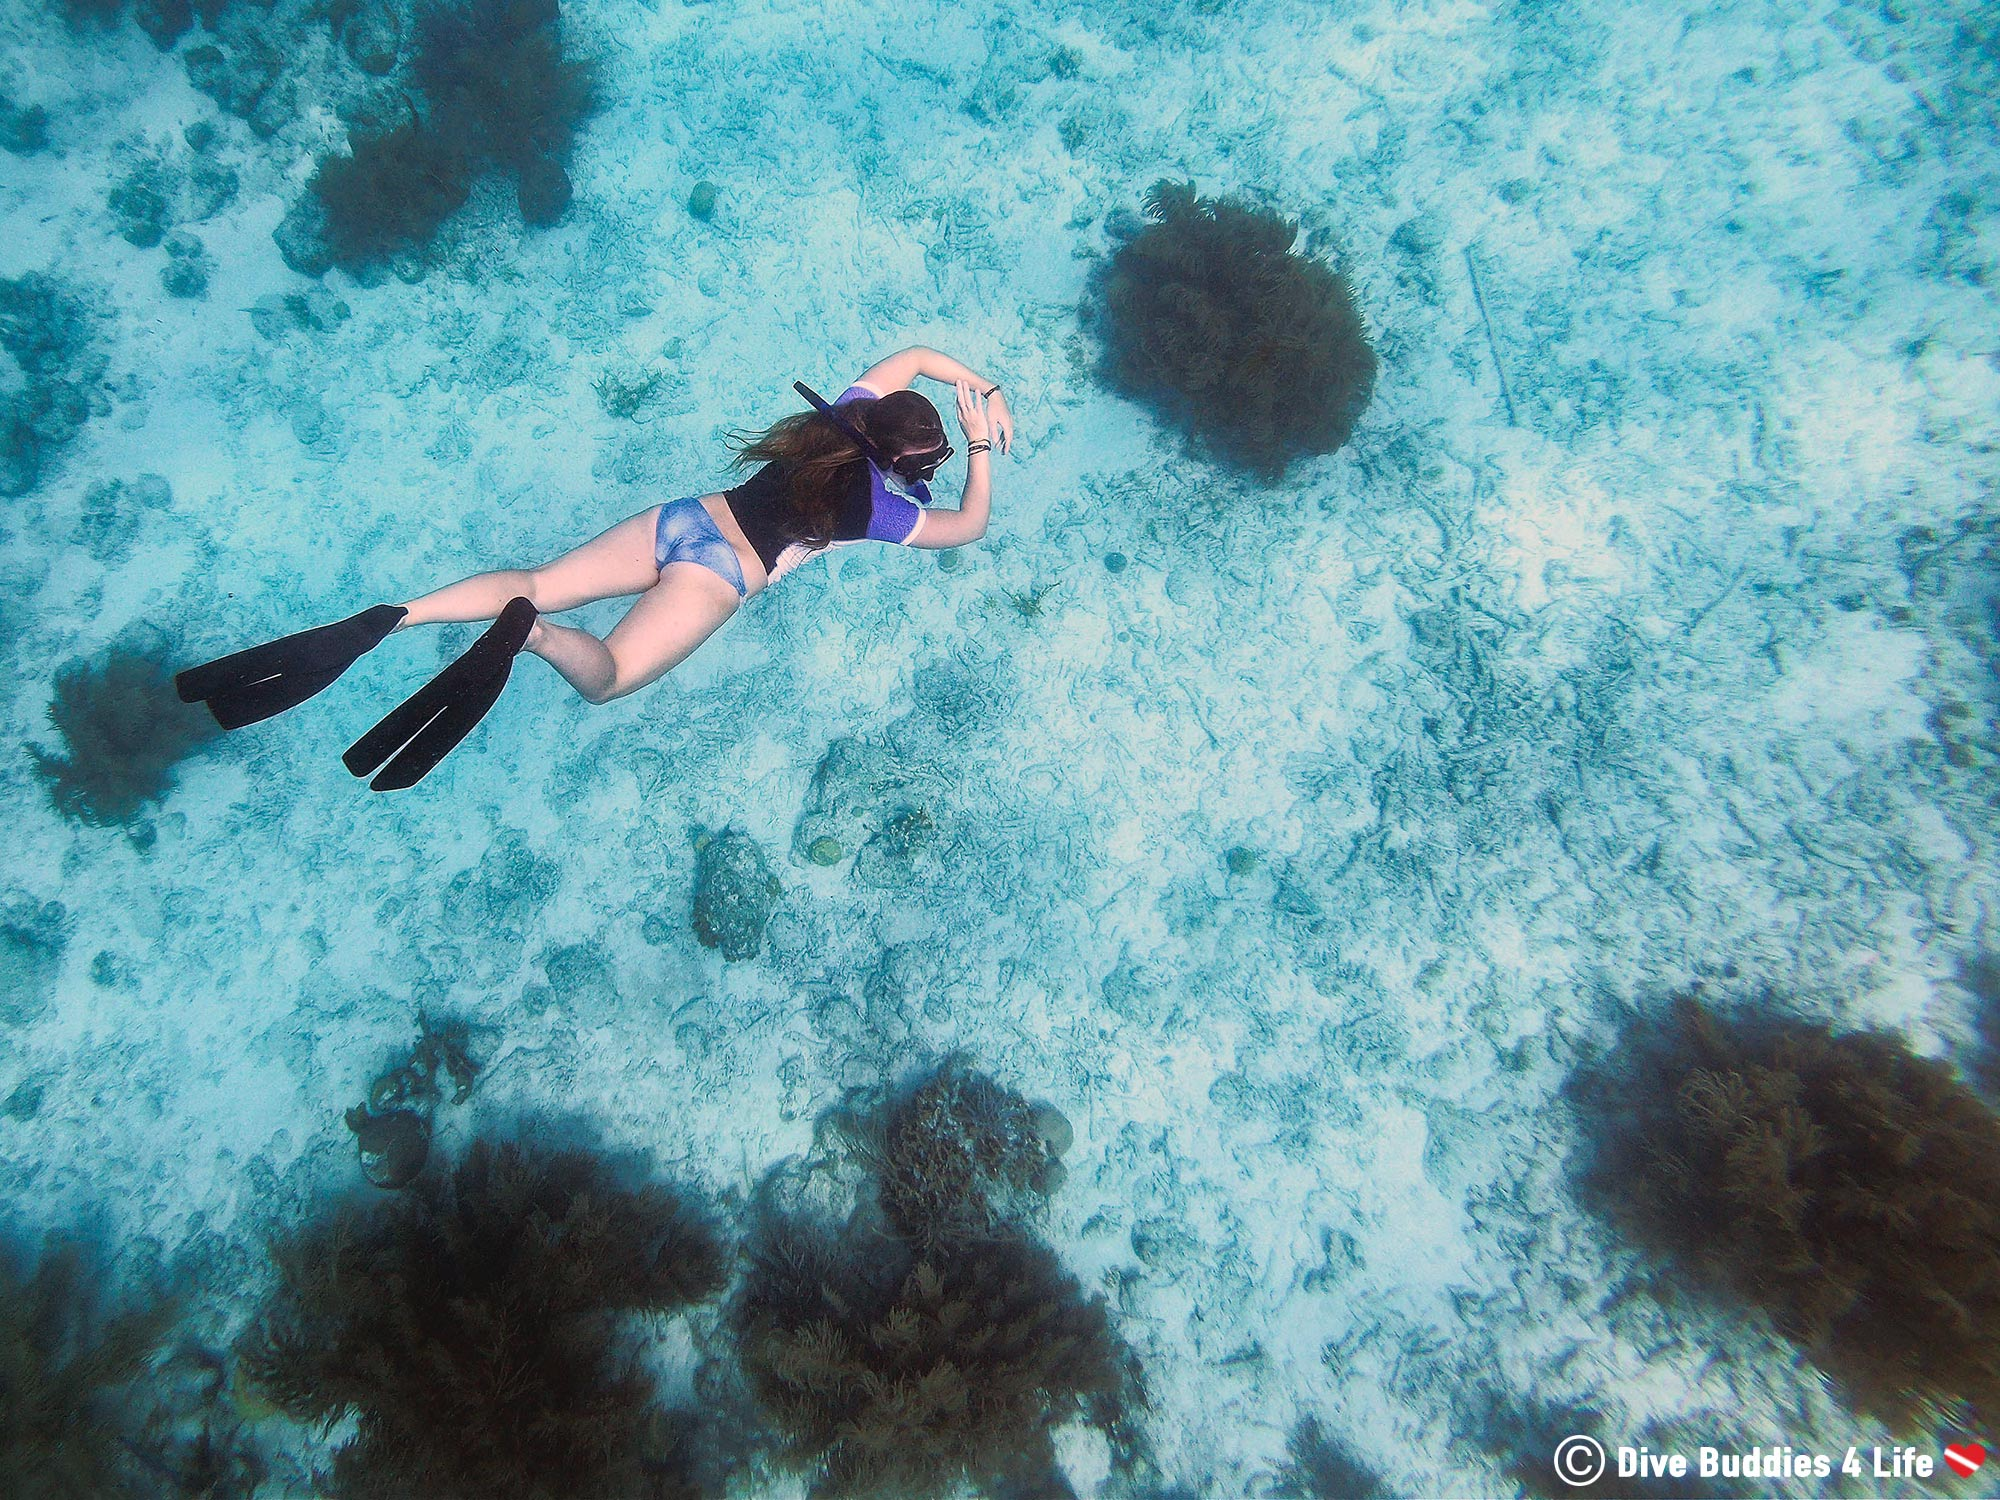 Ali Diving Down To The Bonaire Soft Coral In The Shallows, Dutch Caribbean